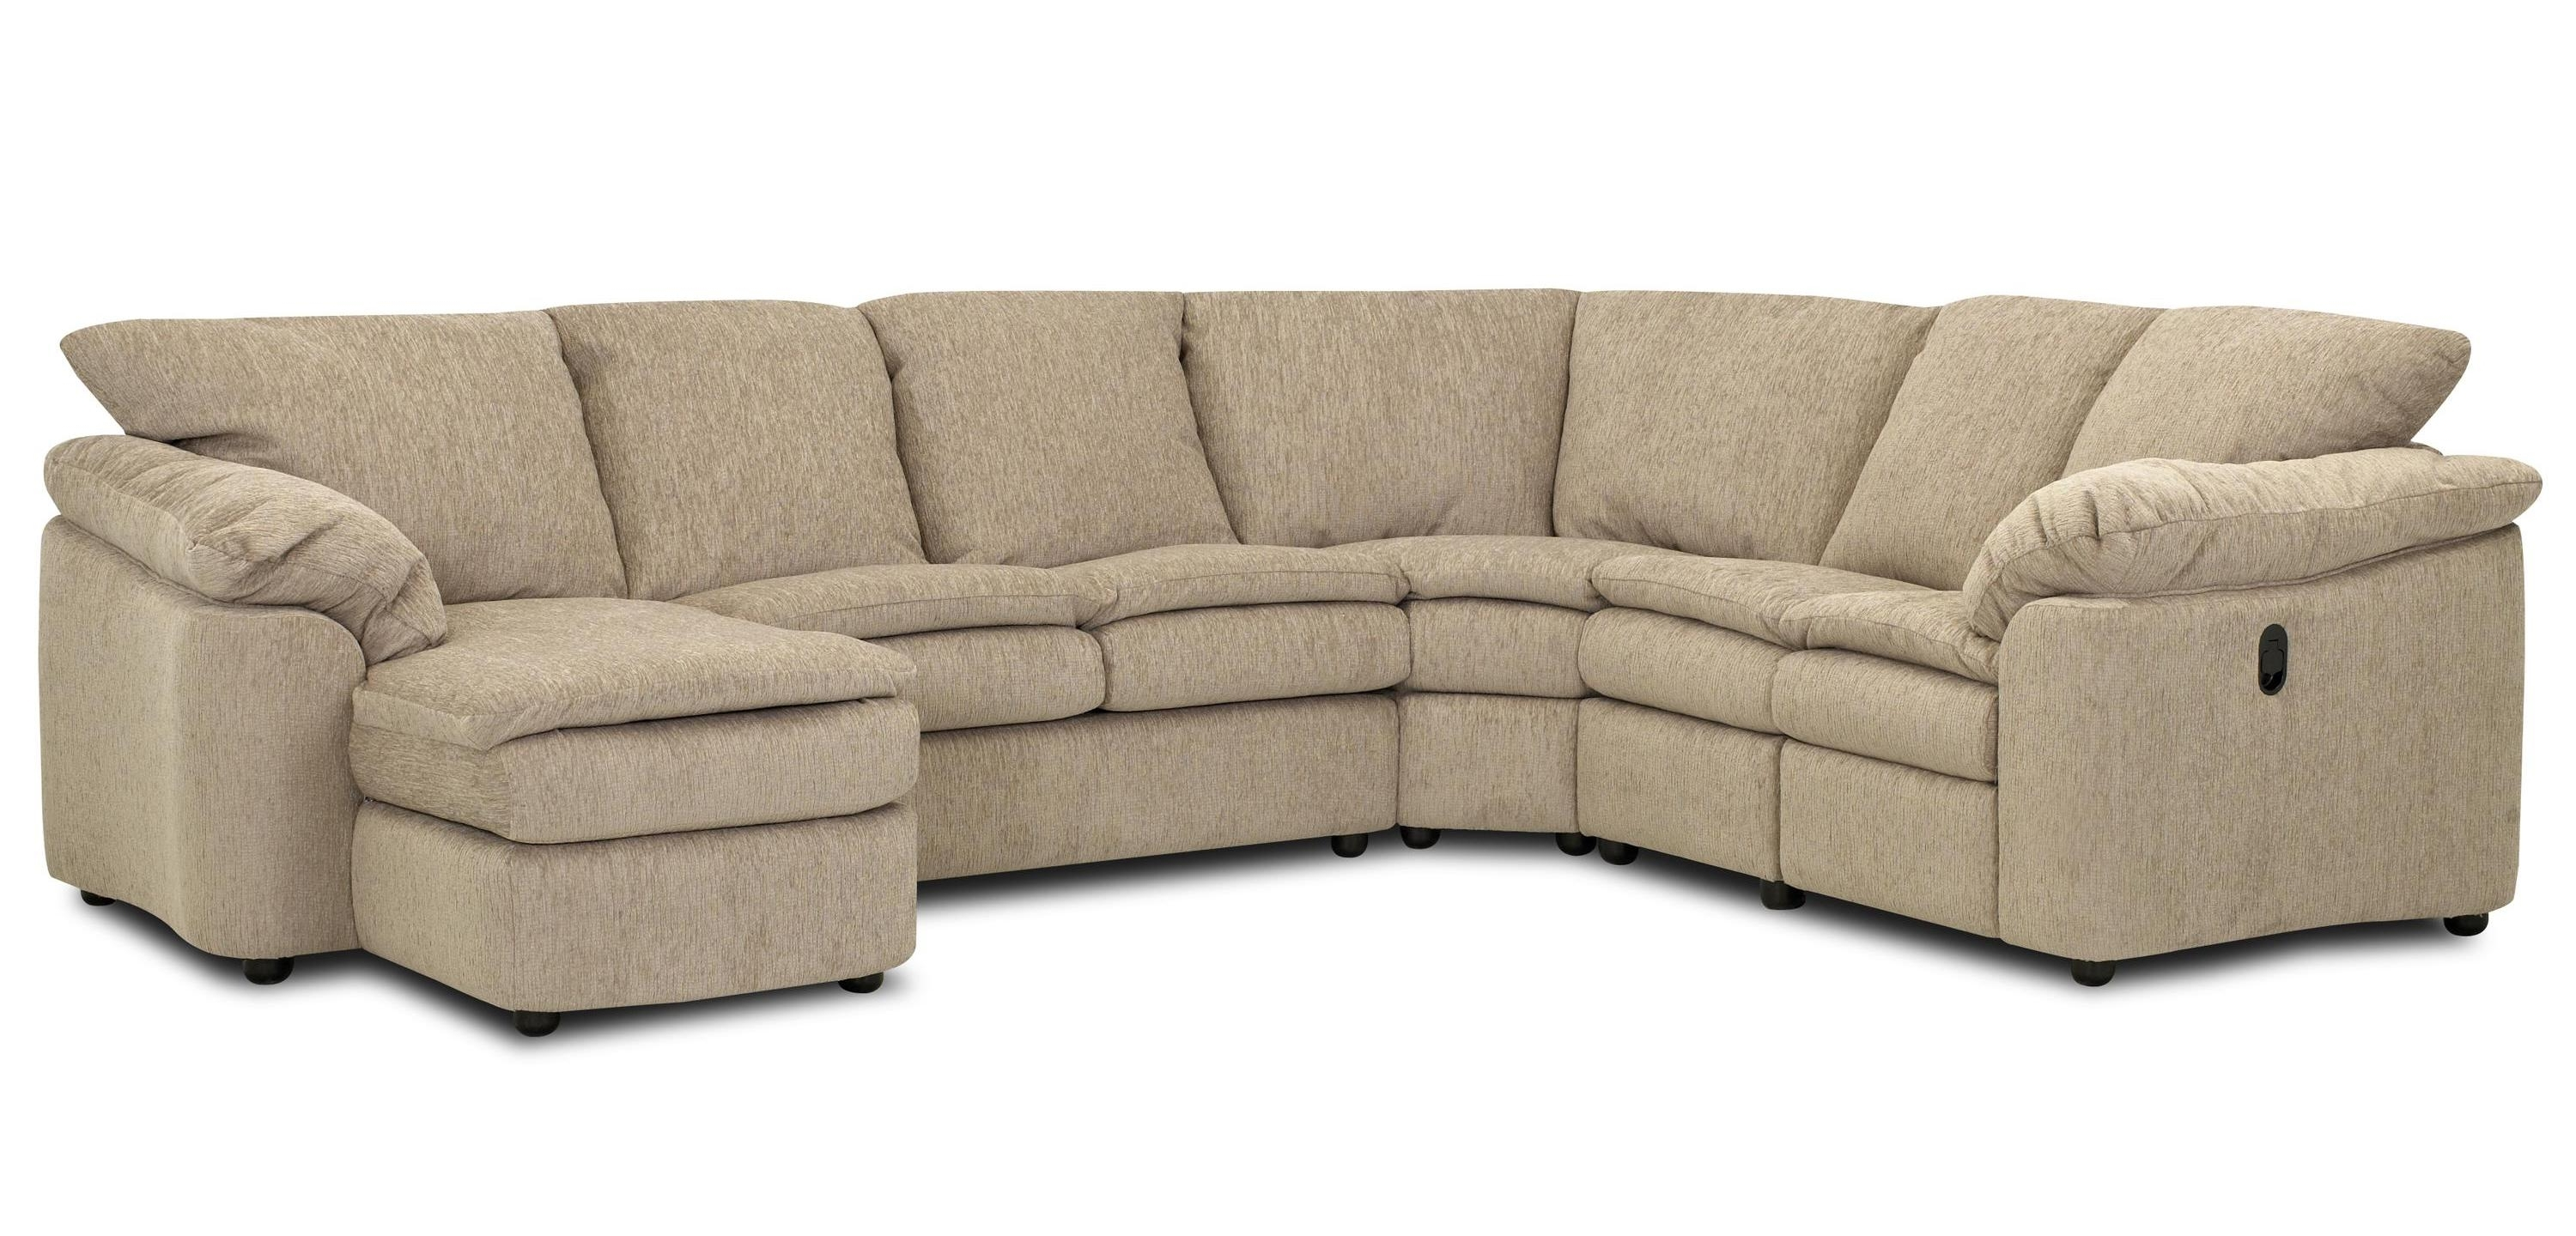 Most Recent Klaussner Legacy Dual Reclining Left Arm Loveseat, Sleeper And Pertaining To Loveseat Chaises (View 7 of 15)